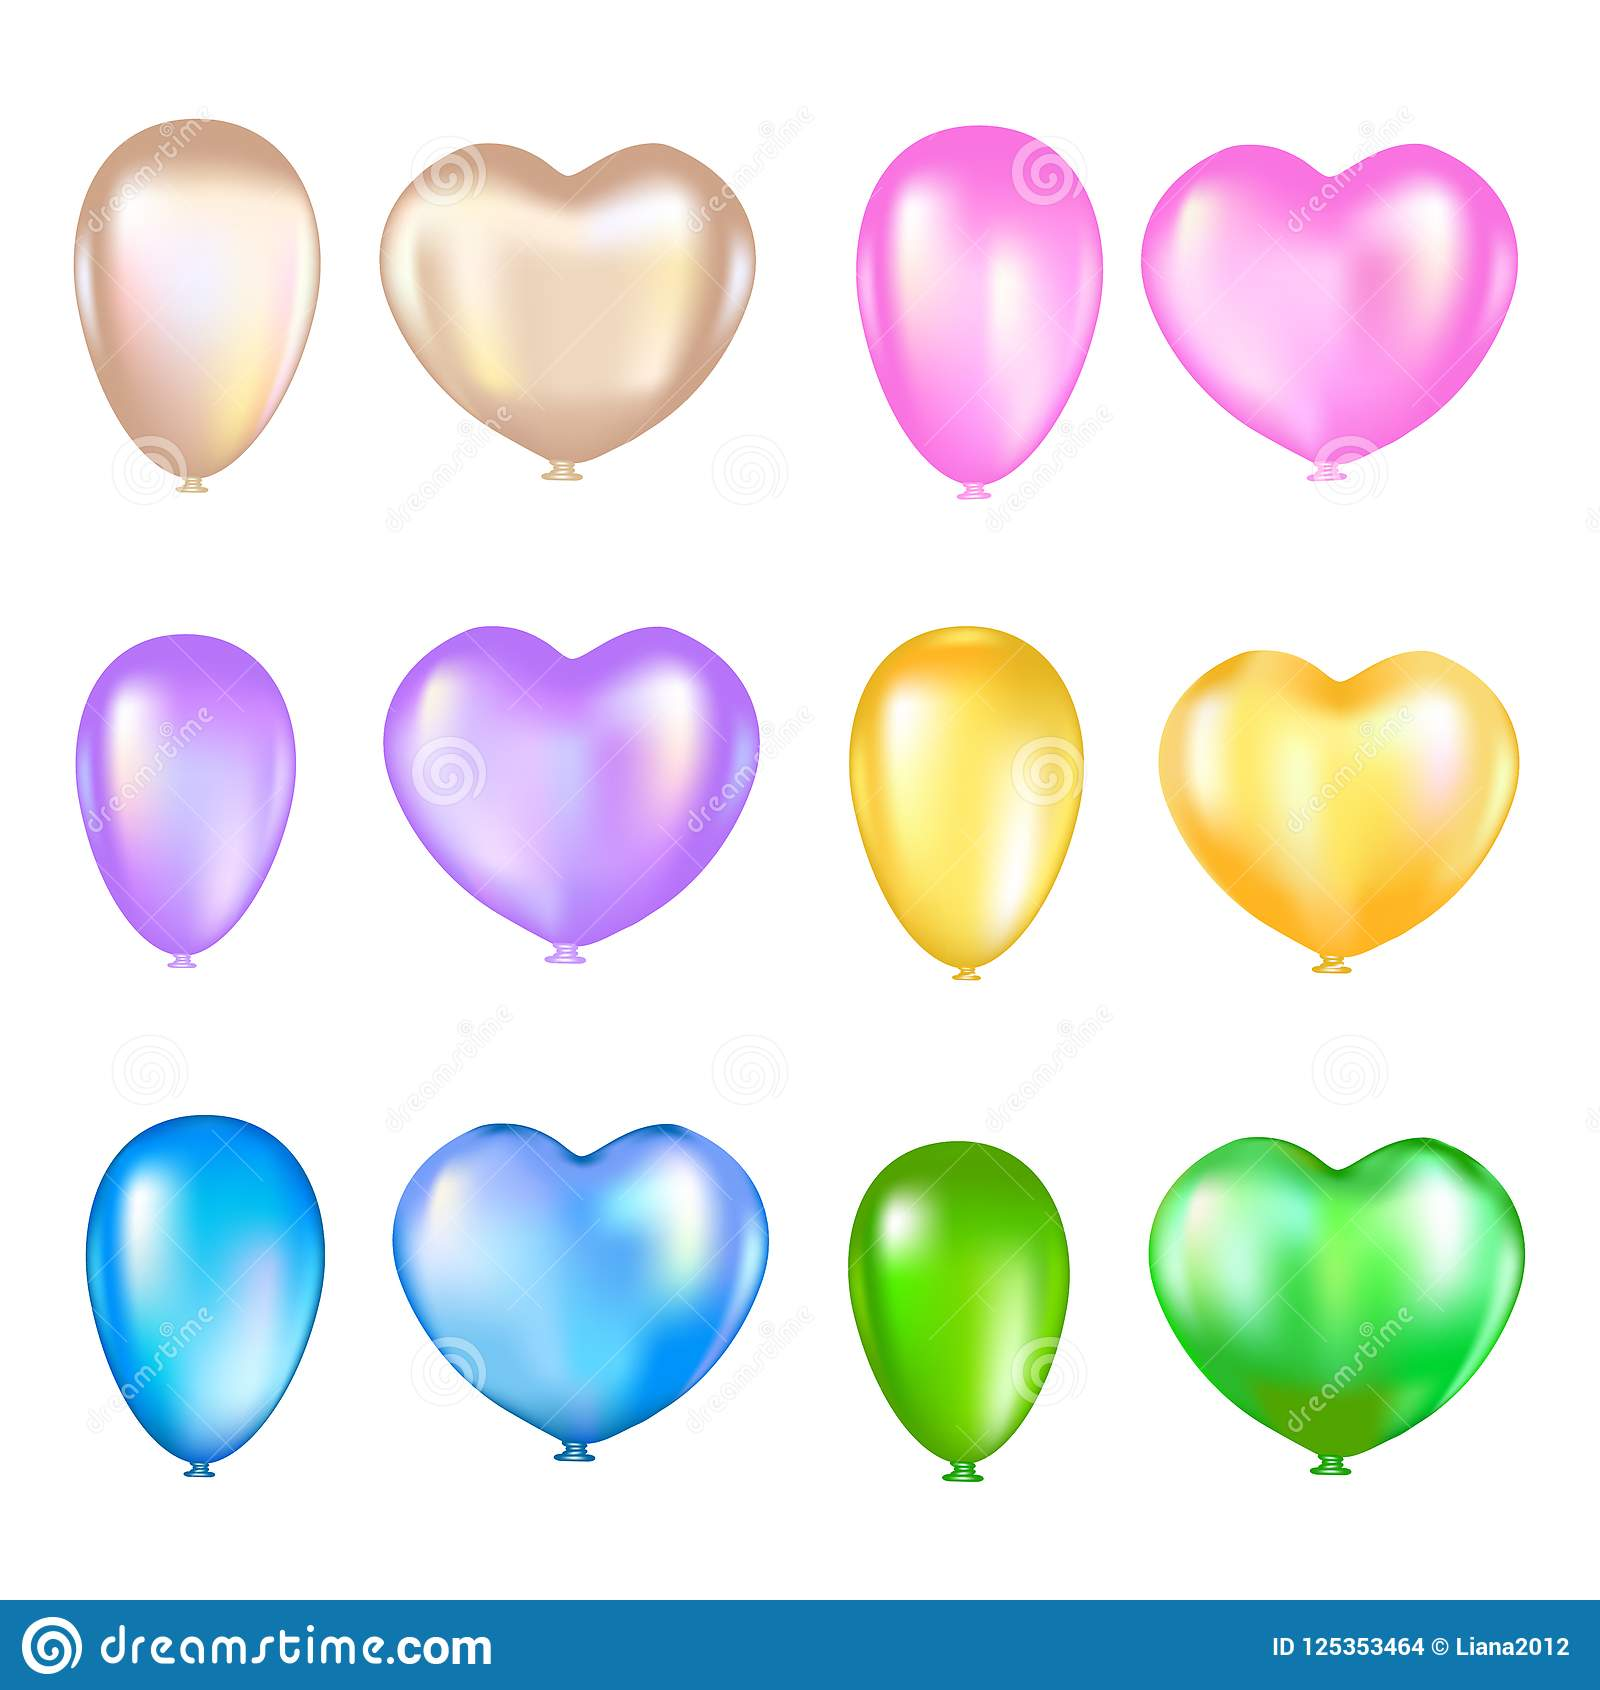 Set of colorful air balloons on a white background